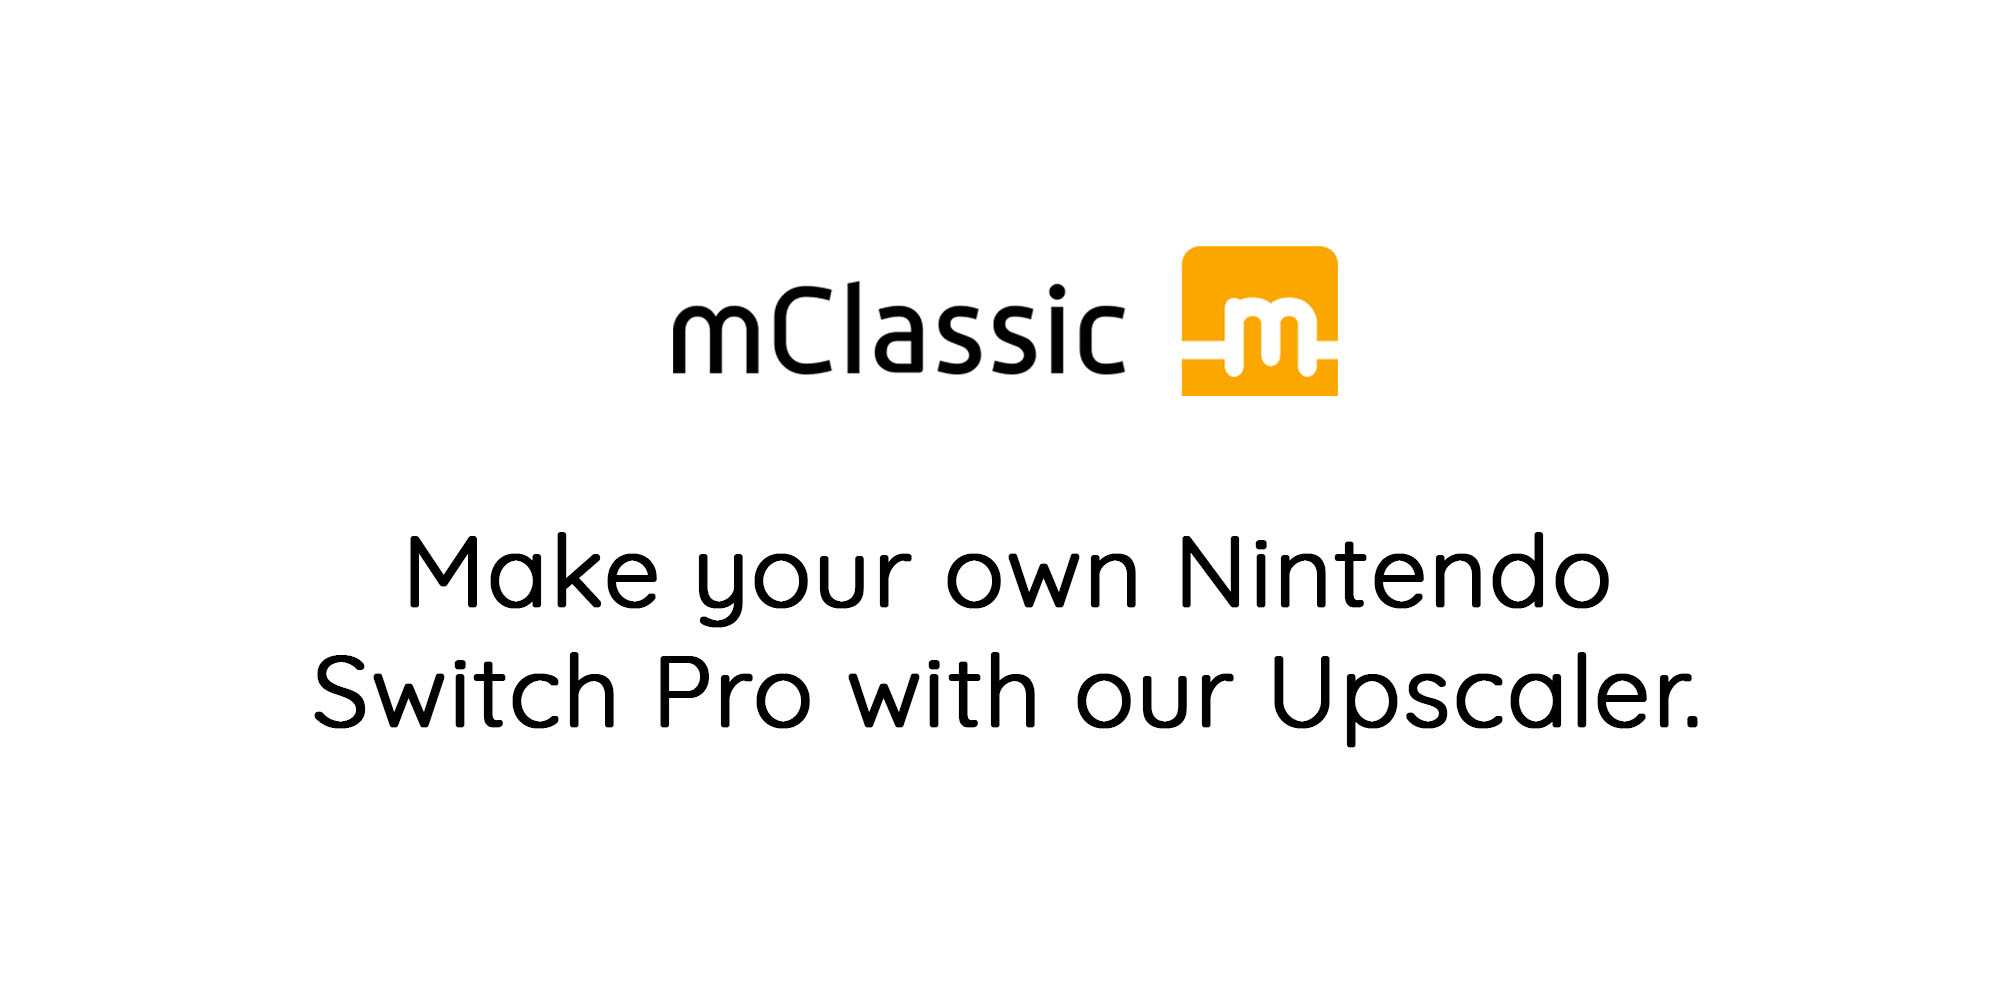 Make your own Nintendo Swith Pro with our upscaler.